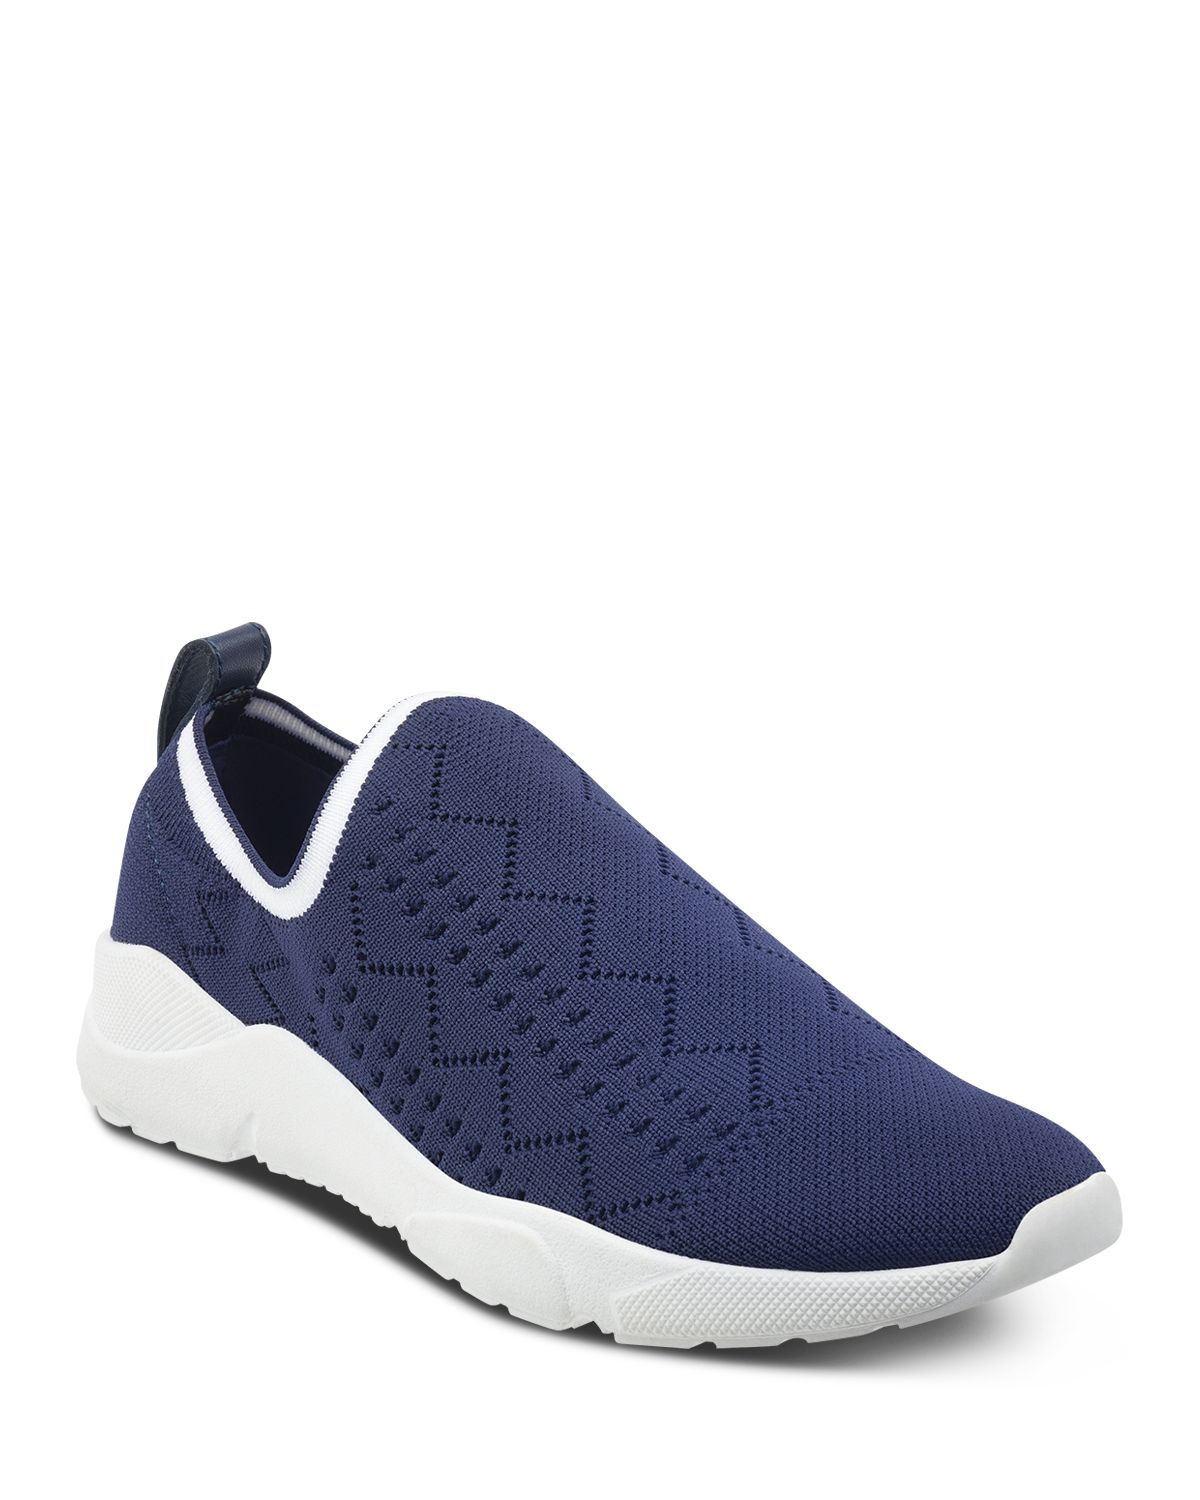 MARC FISHER Women's Karri Knit Slip-On Sneakers